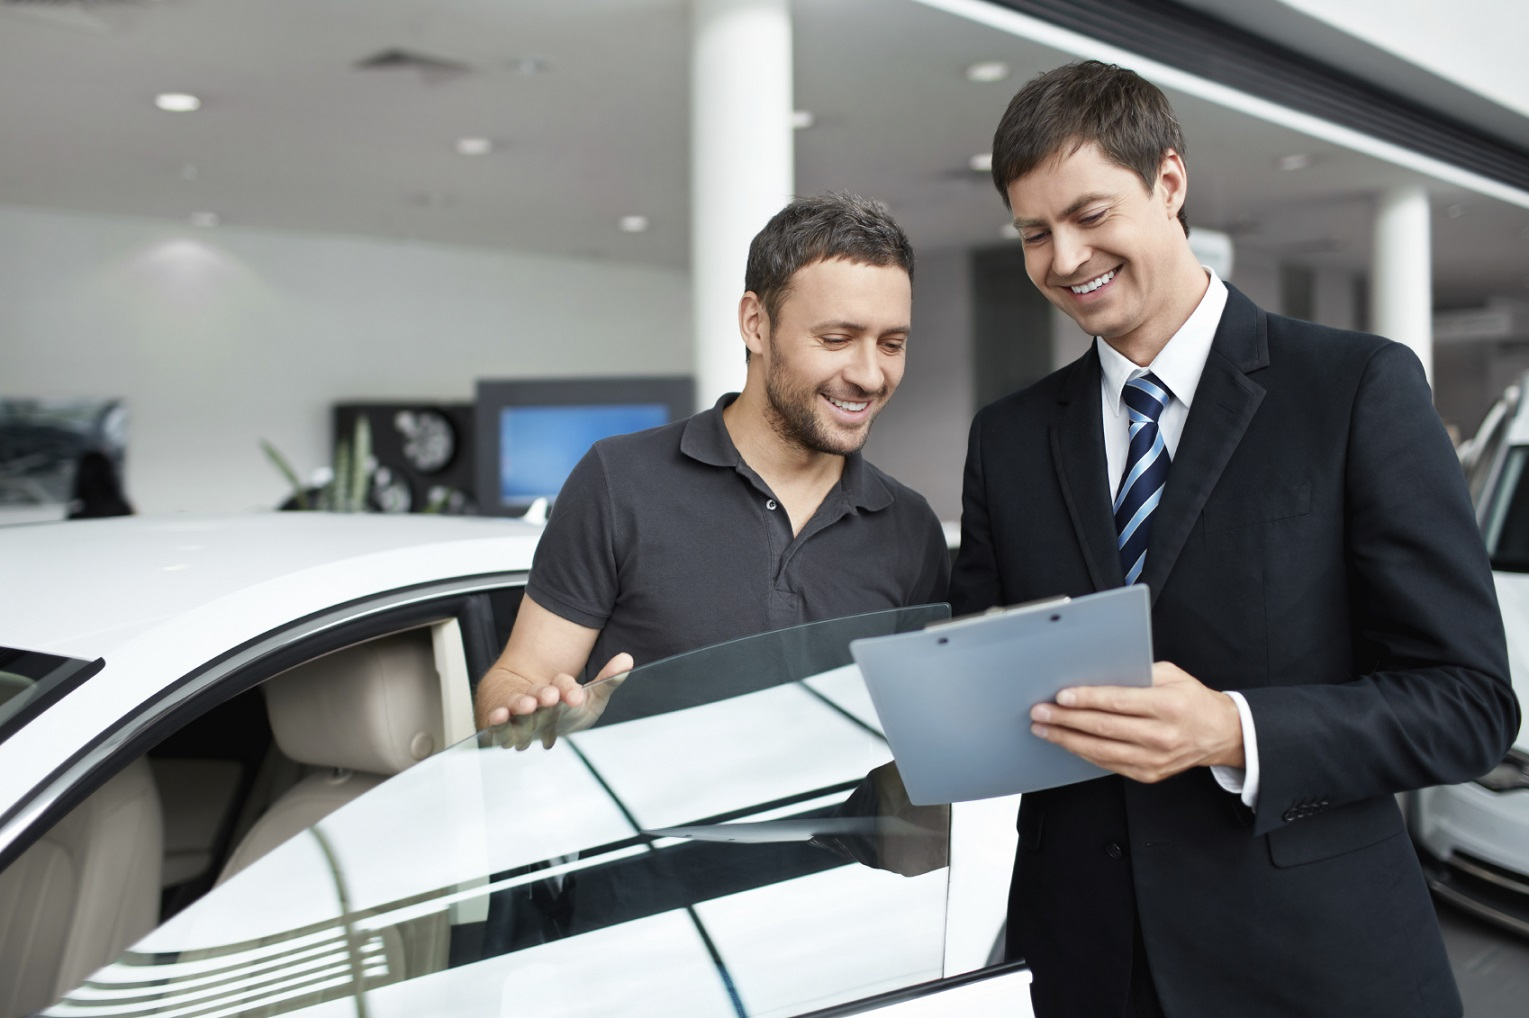 Our Team Can't Wait to Assist You!